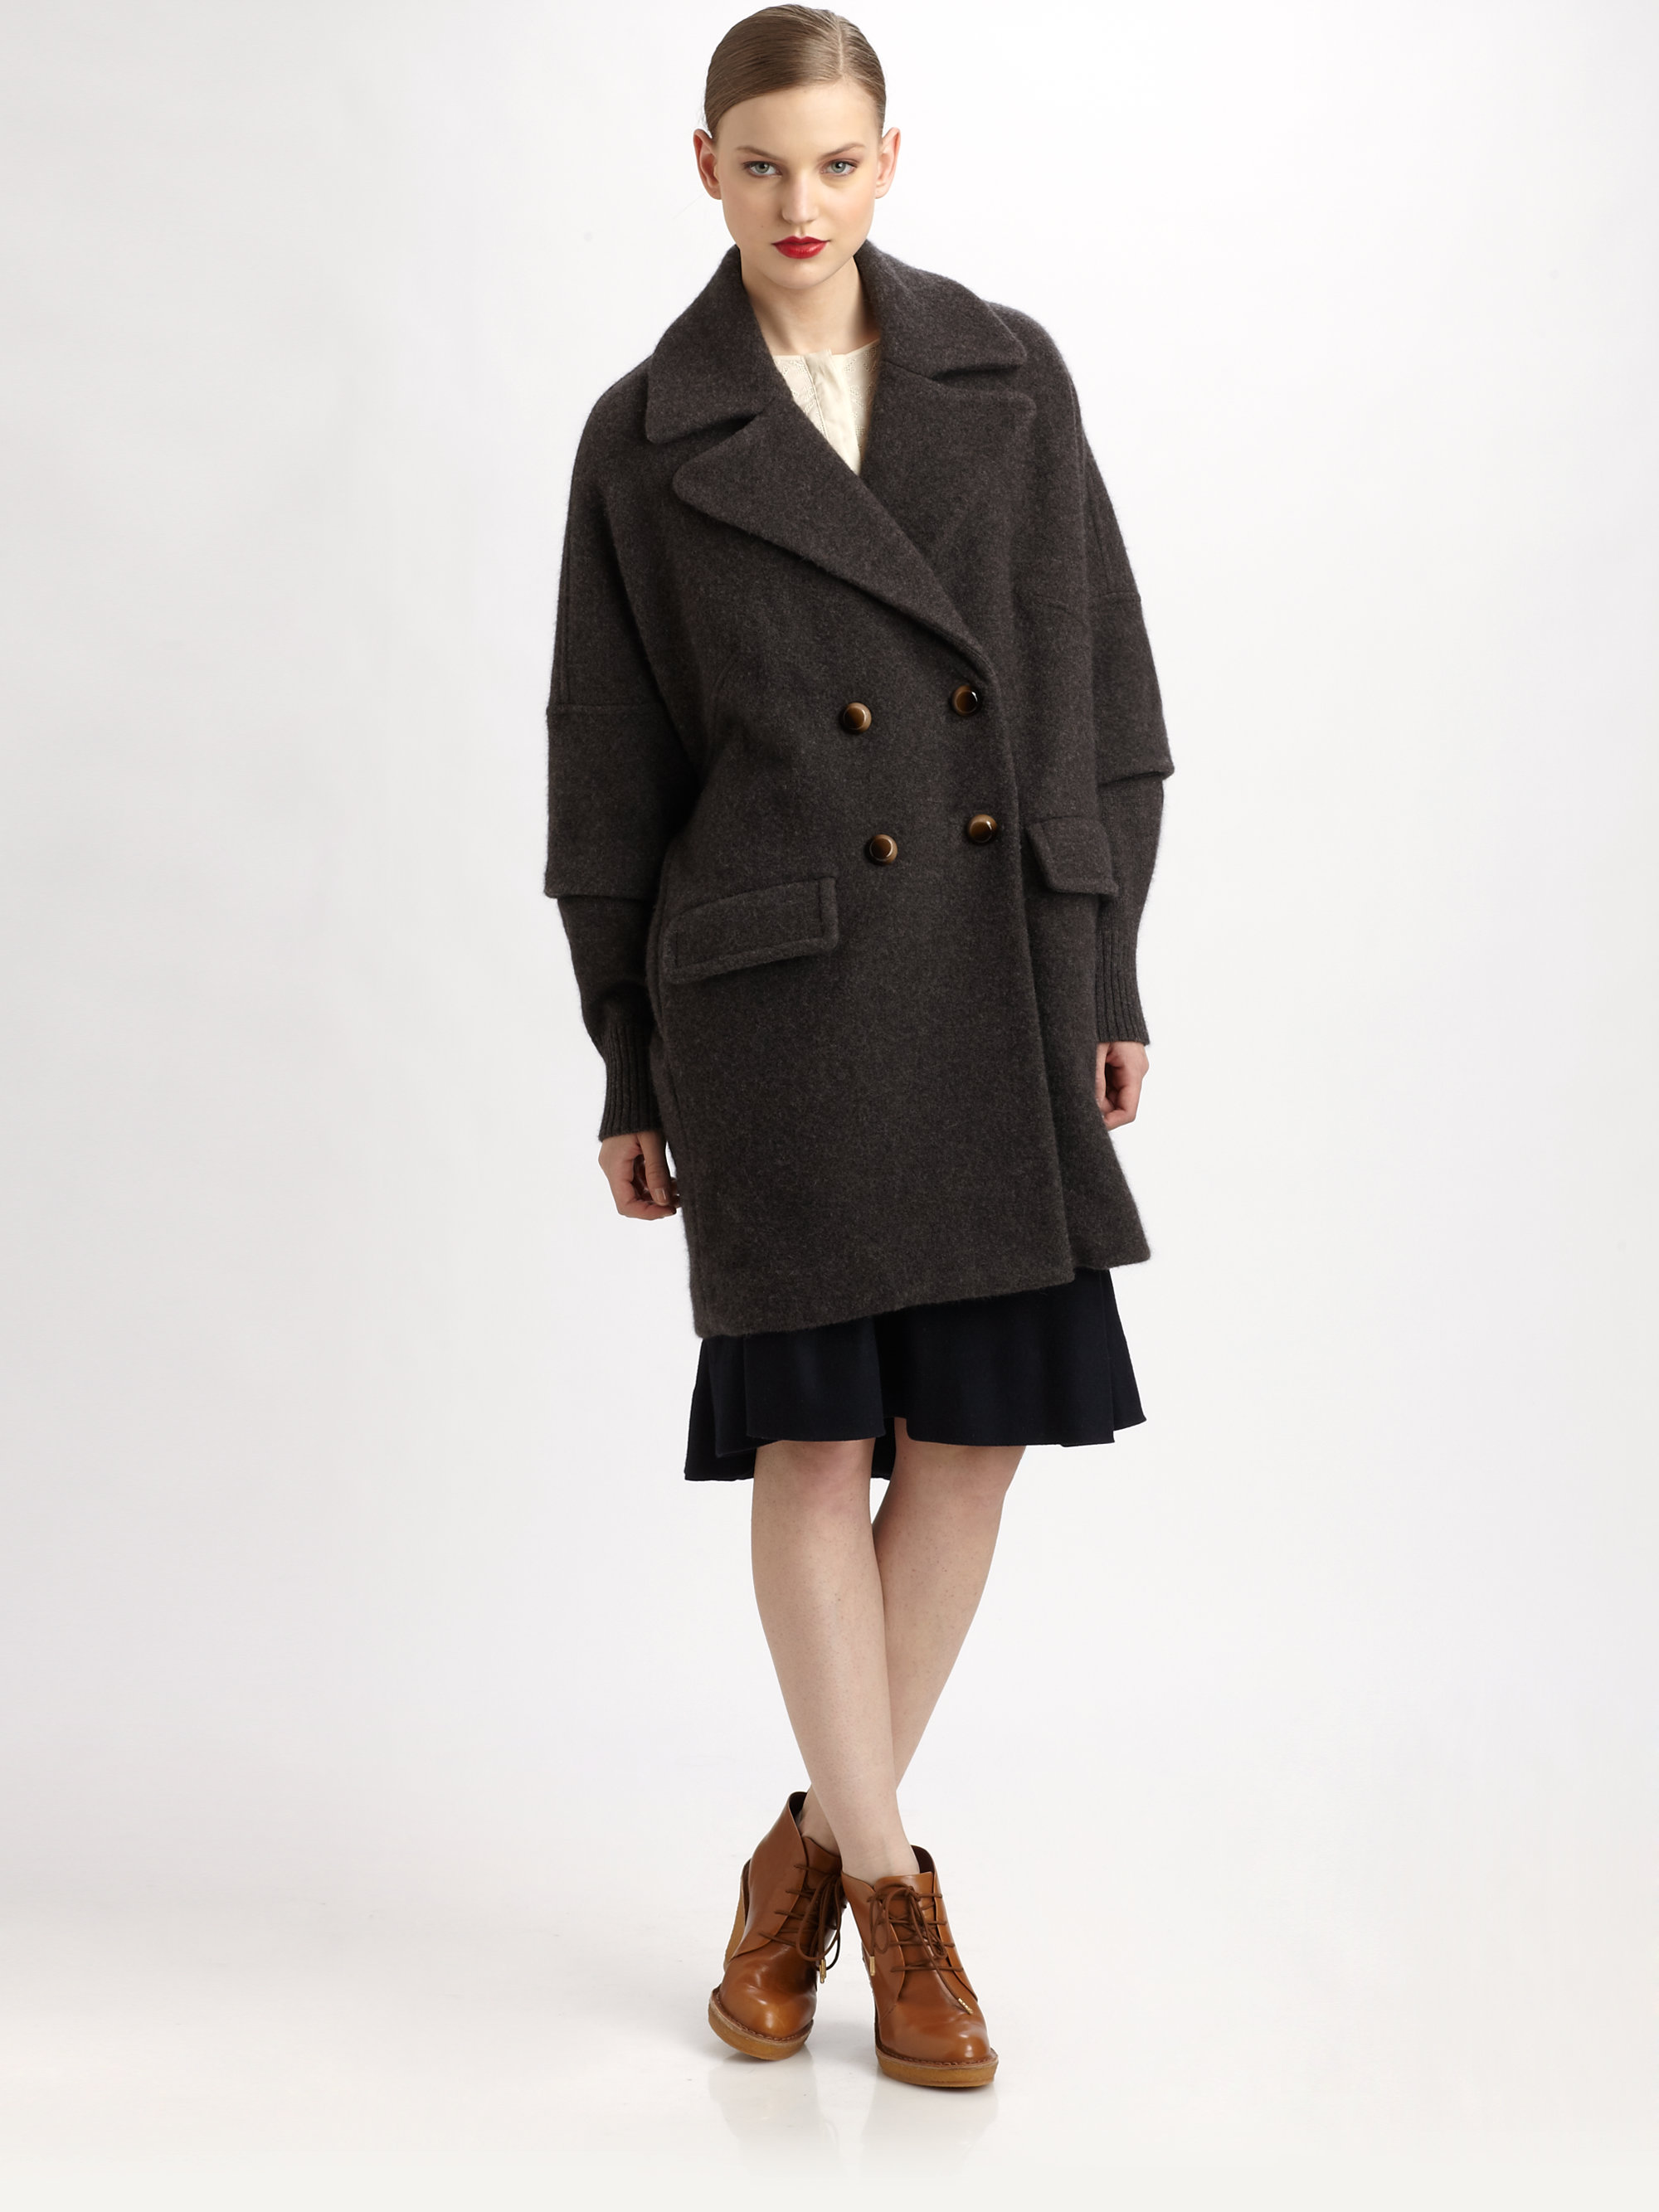 marc by marc jacobs bex sweater coat in brown lyst. Black Bedroom Furniture Sets. Home Design Ideas